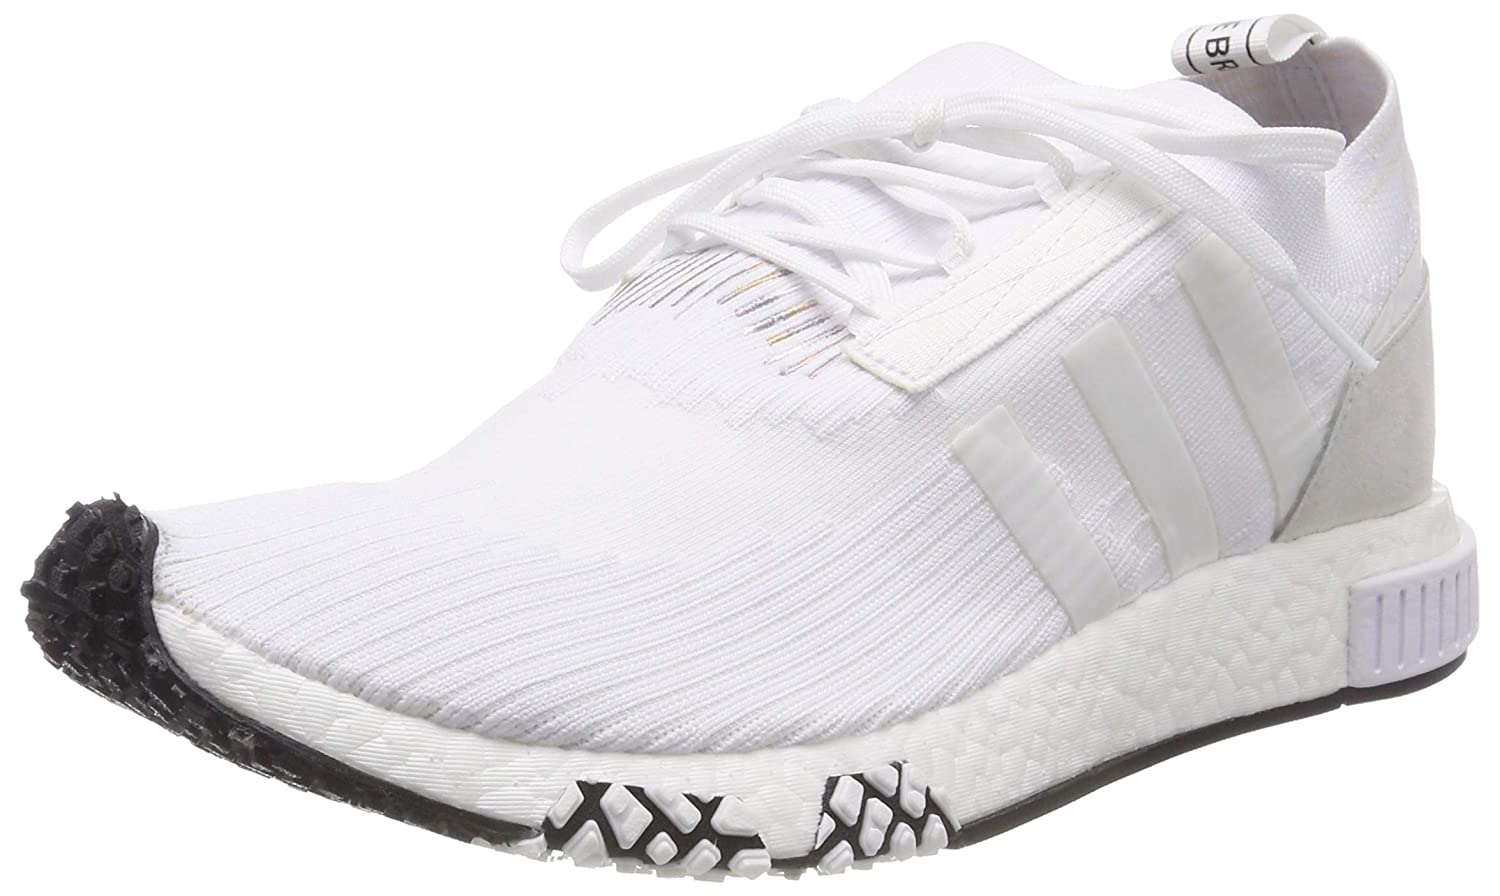 Blanc (Ftwbla 000) adidas NMD Racer PK – Chaussures Sportives, Homme